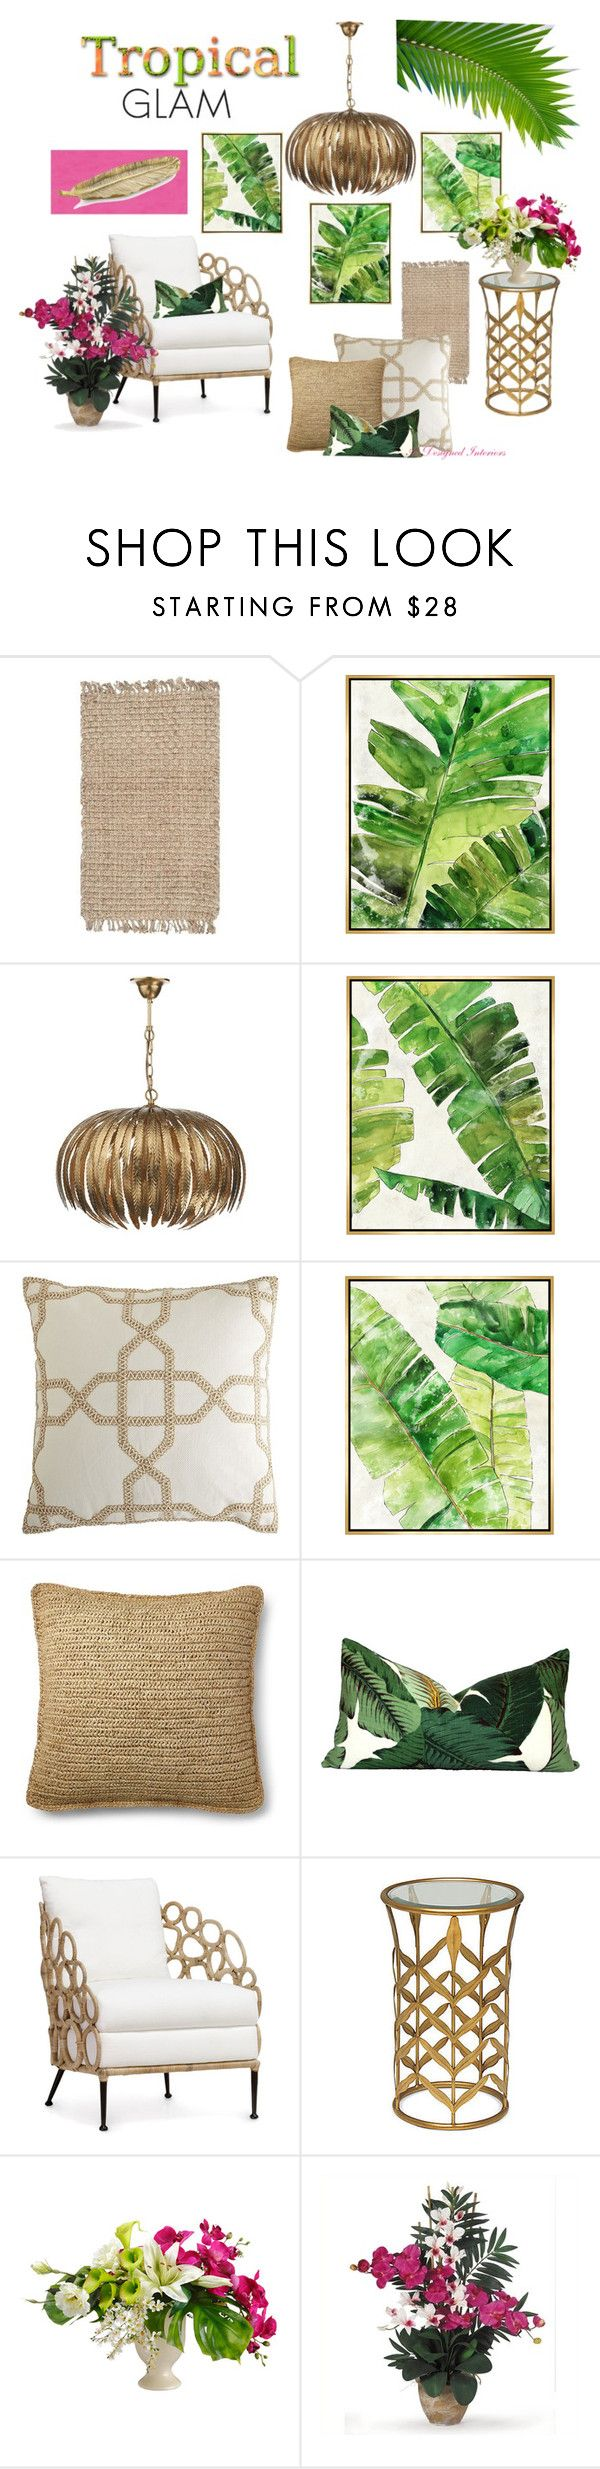 Tropical Glam By Angela L S Liked On Polyvore Featuring Interior Interiors Polyvore Home Decortropical